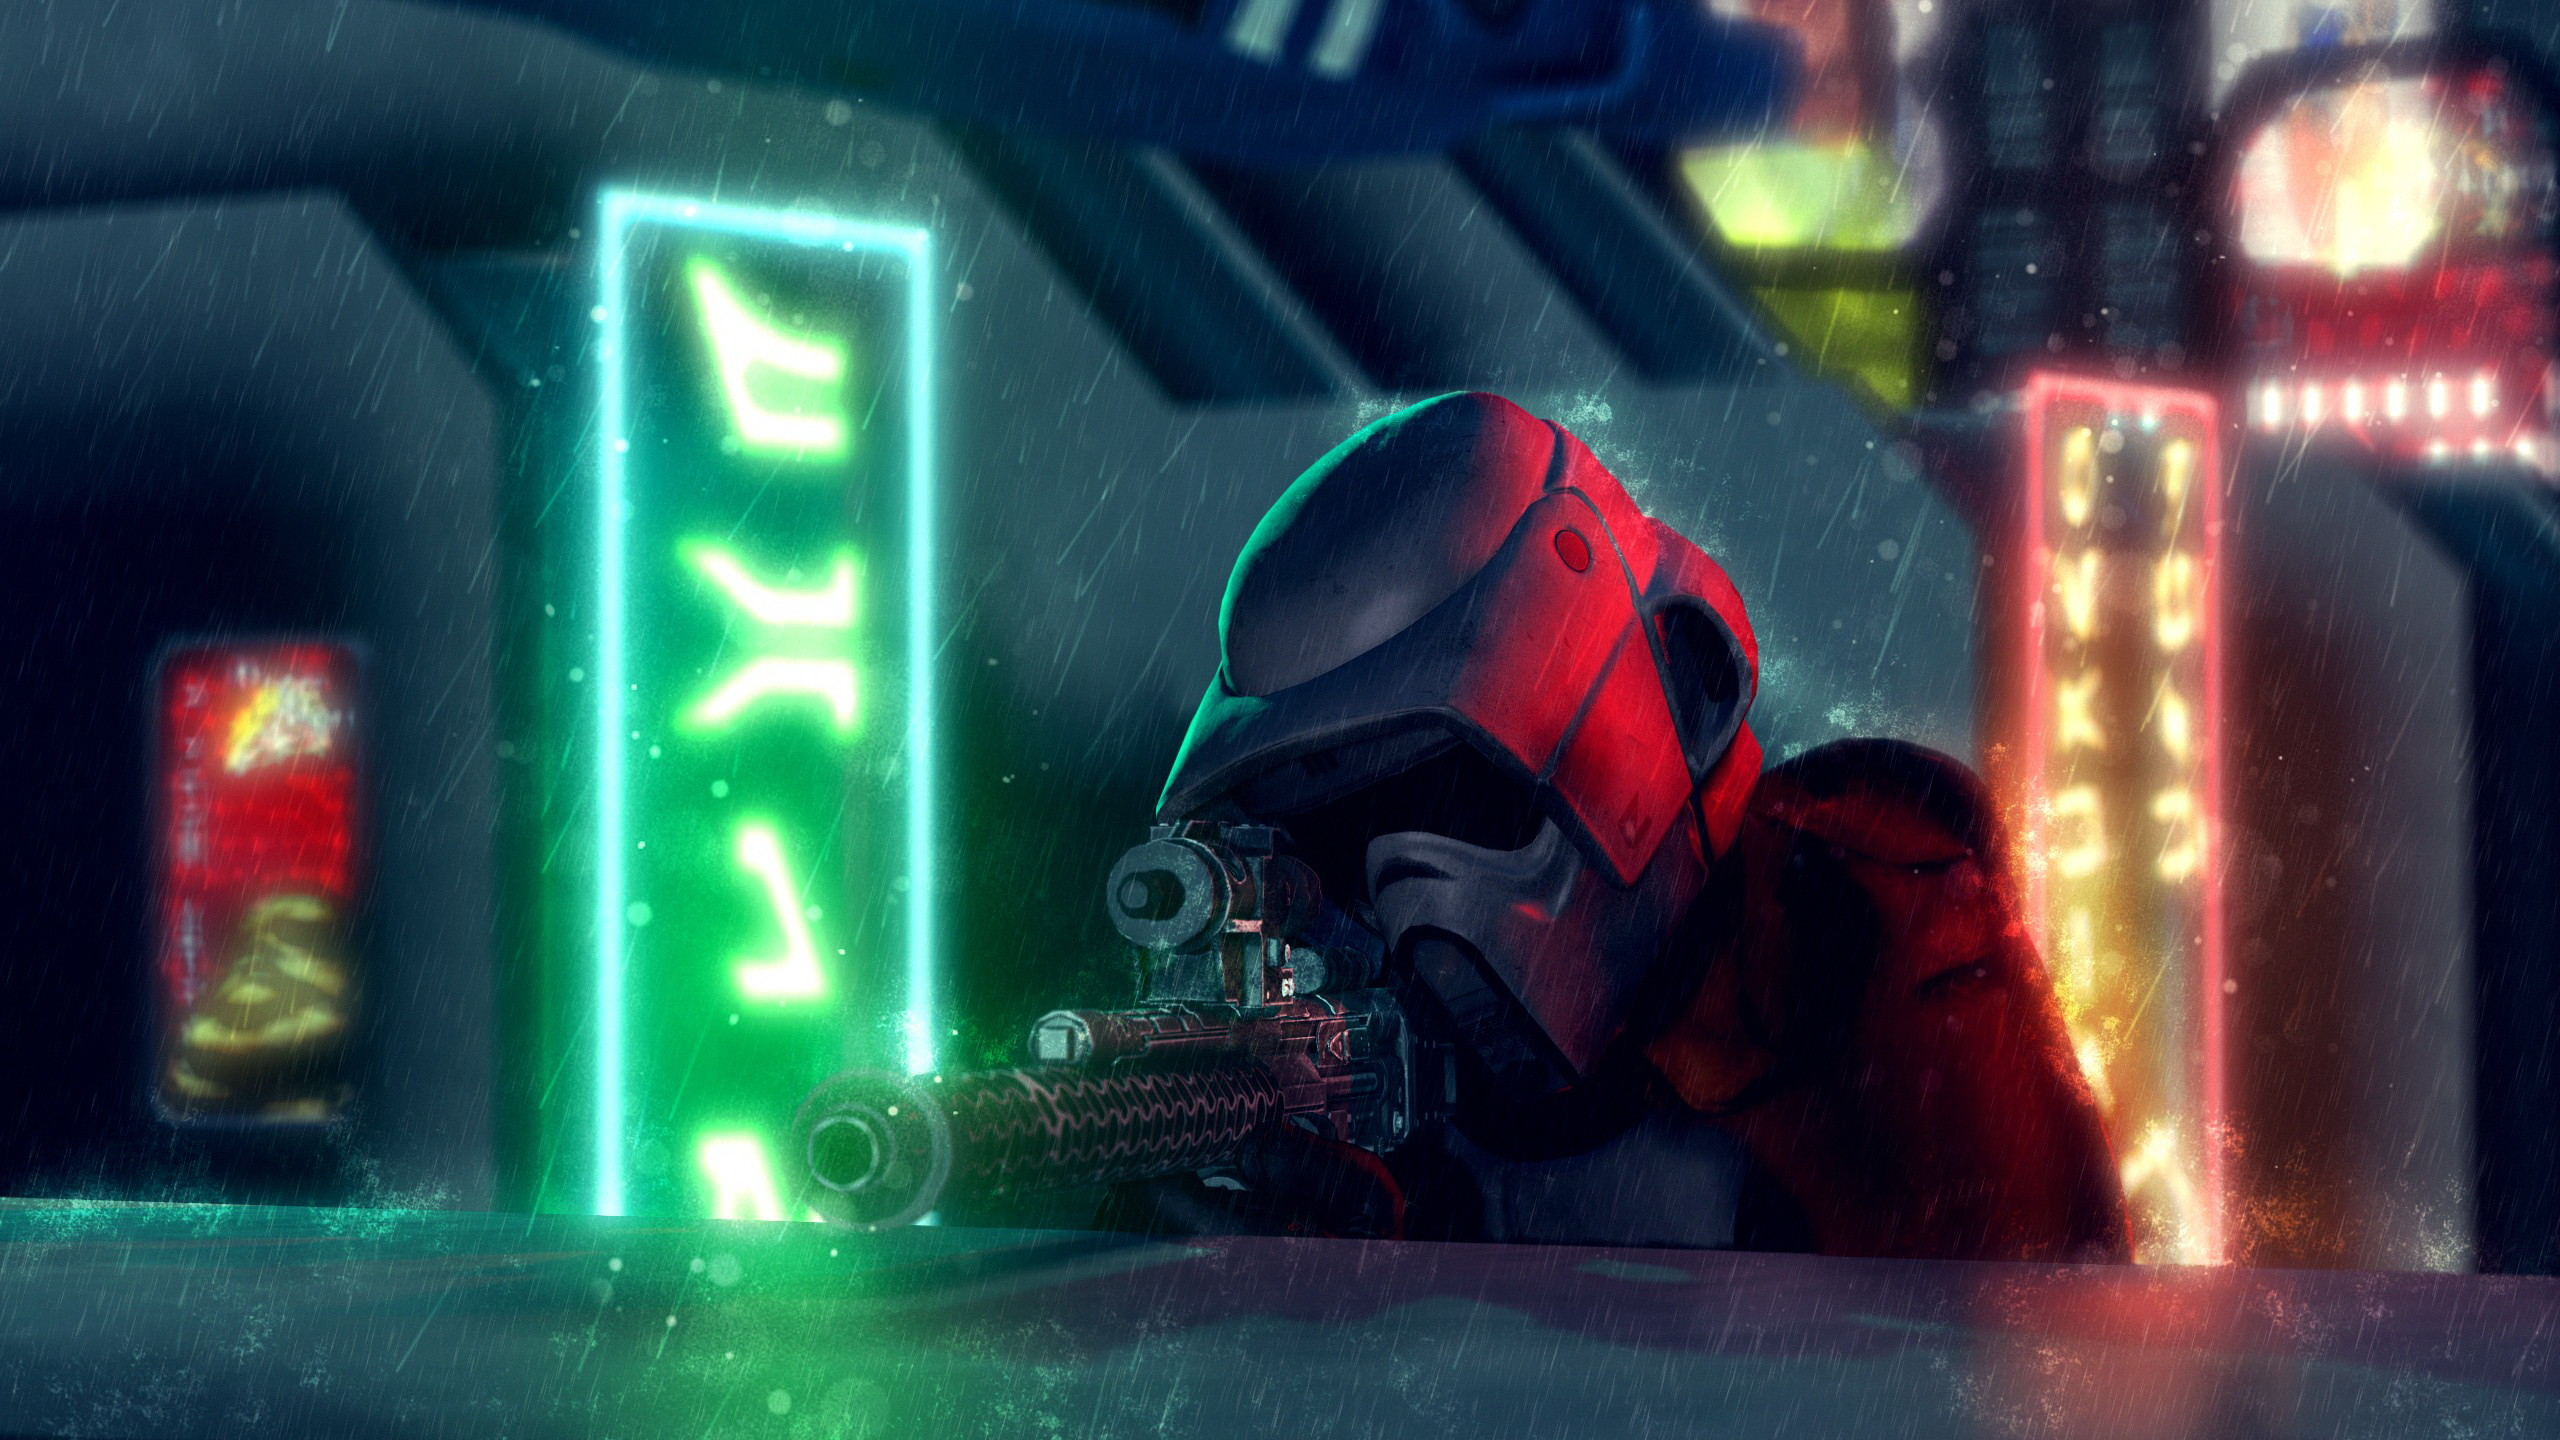 2560x1440 Sci Fi Star Wars Neon Art 2560x1440 Wallpaper Teahub Io